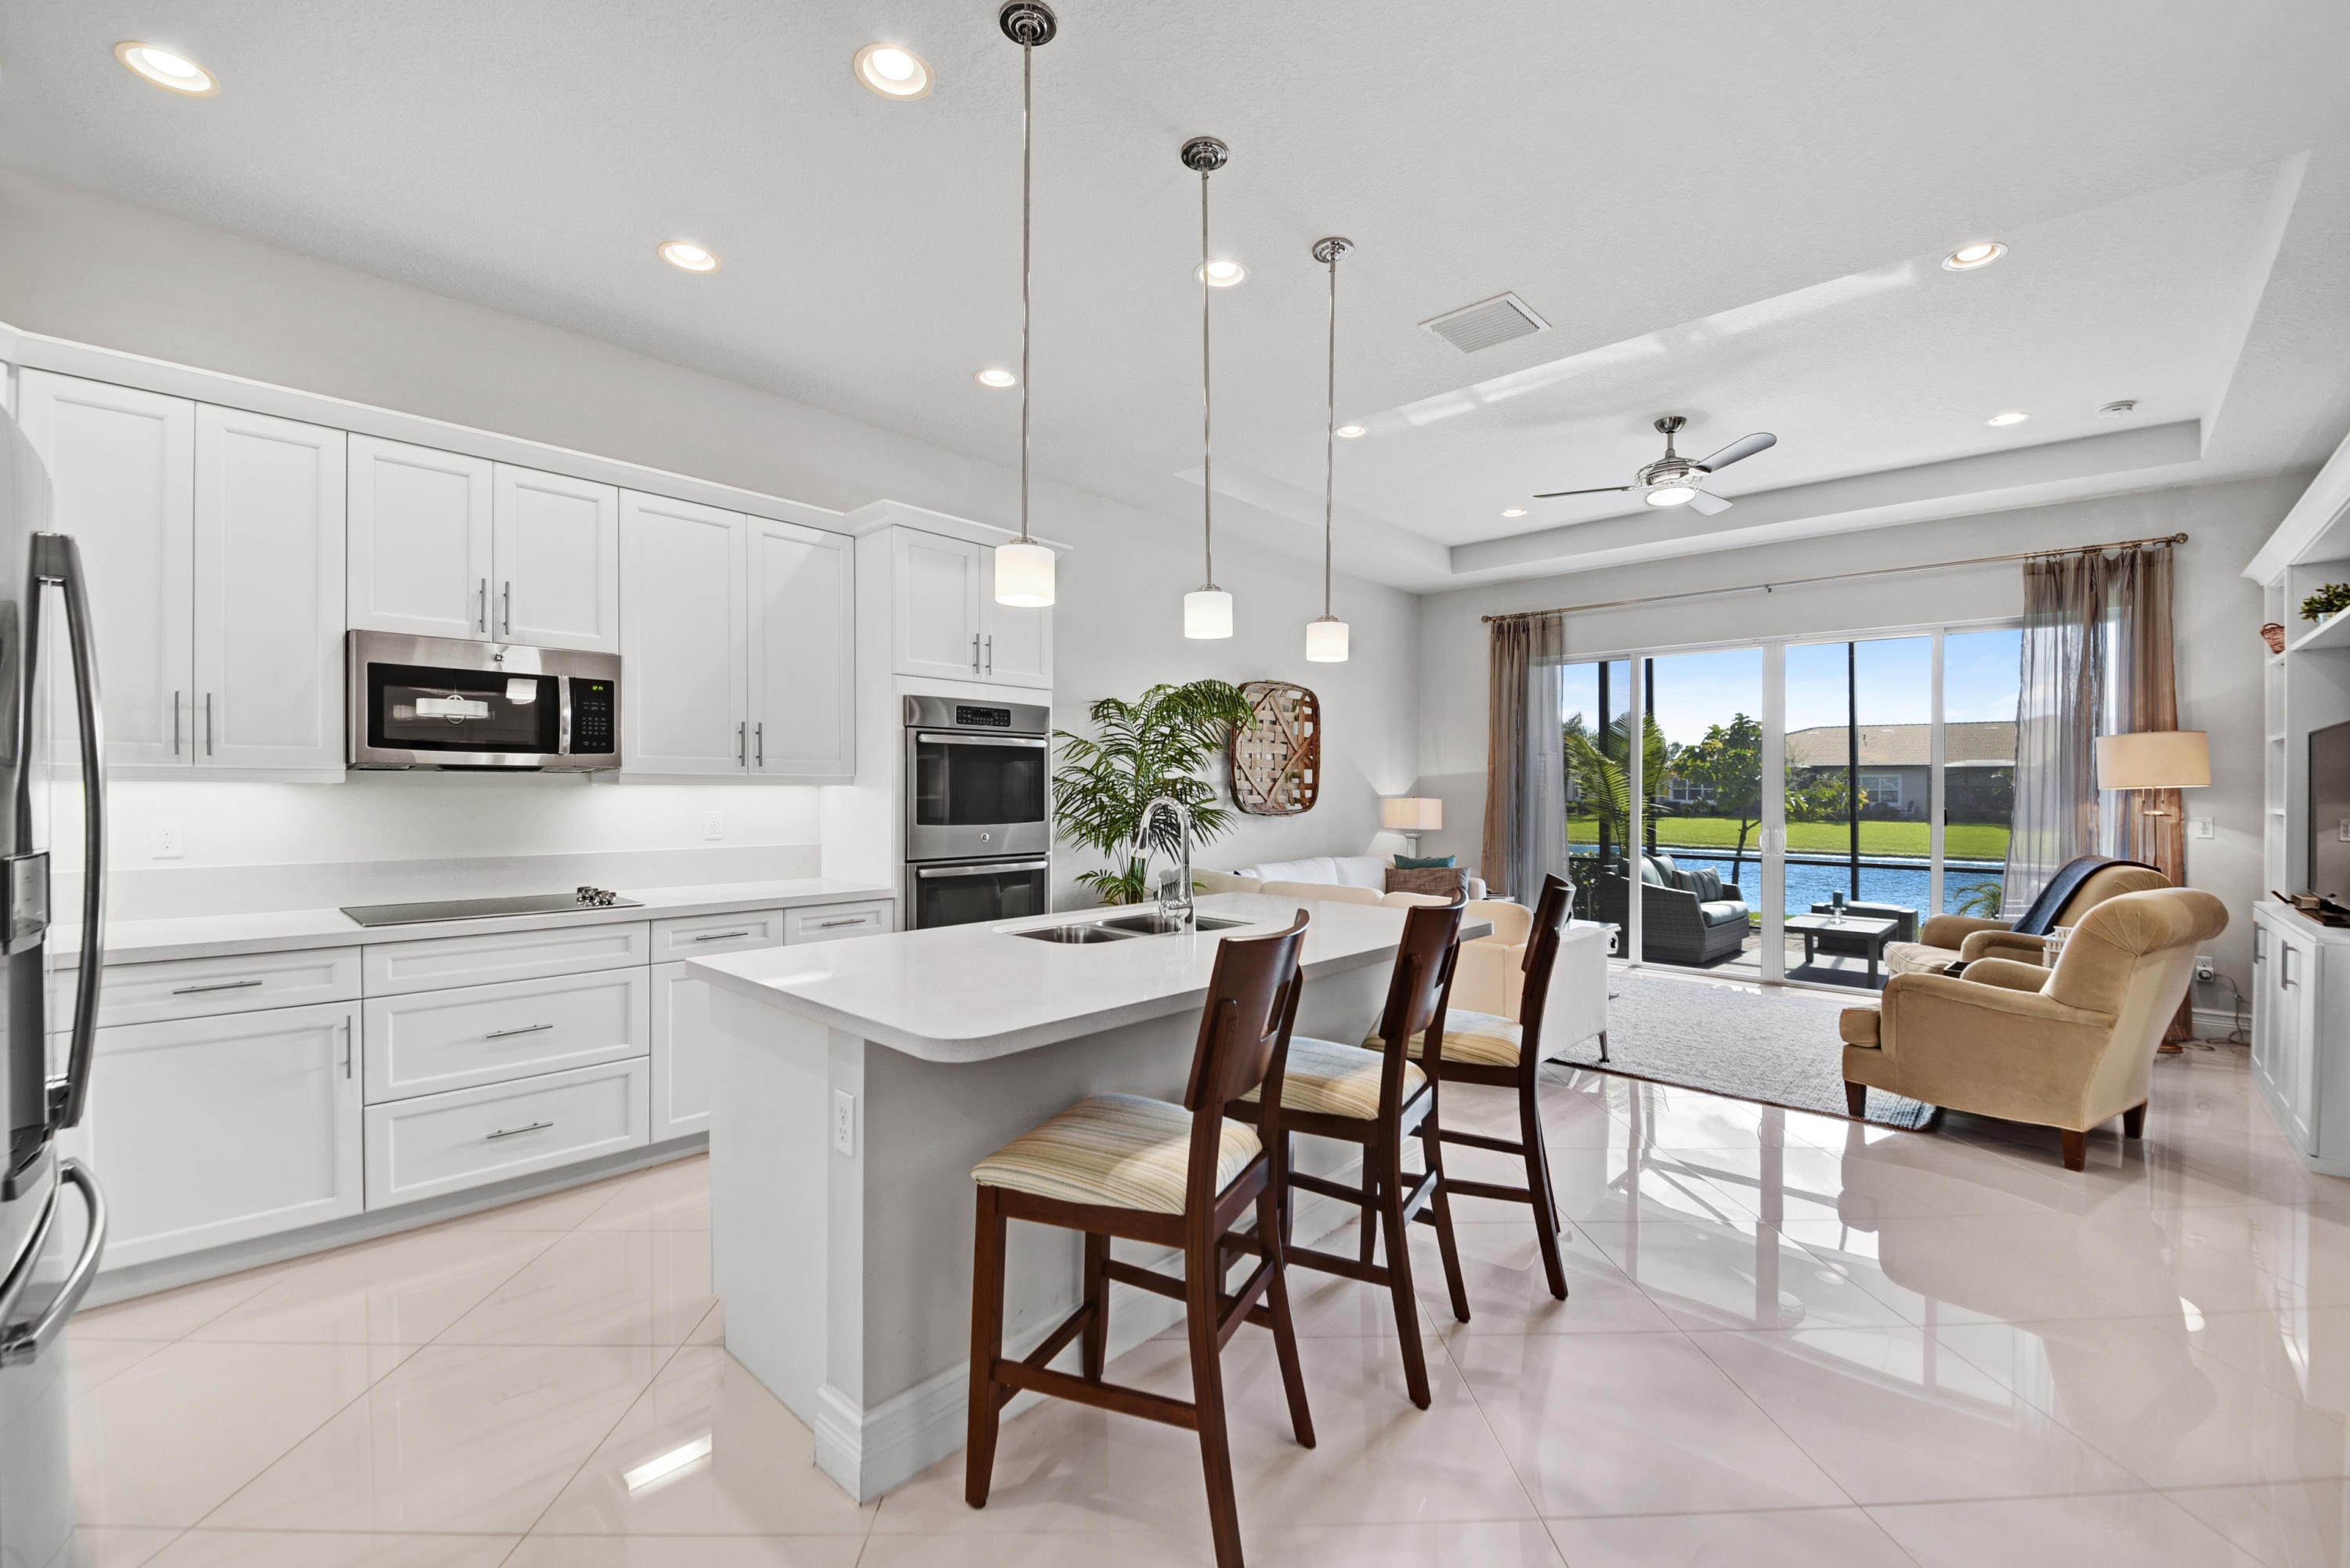 Stunning. Sought after Palma Model 3 bedroom plus den, 3 full bath single family home in Delray Beach.